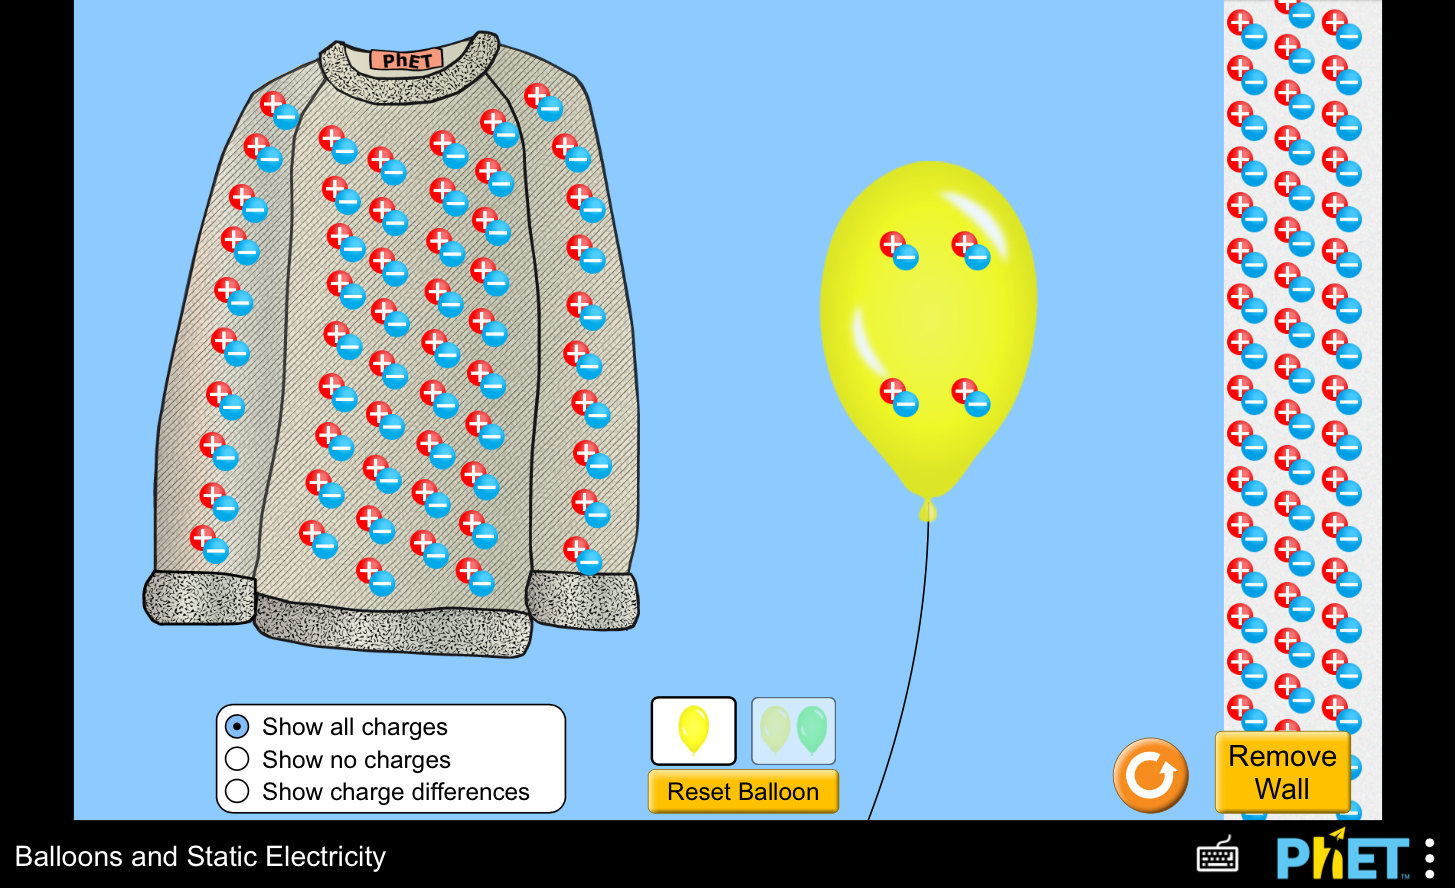 Screenshot: Phet Simulation - Ballons and Static Electricity.  Sweater with number of + / - balls representing protons and electrons on the shirt.  Ballon with a few + / - balls  on it, and a wall with a large number of + / - balls.